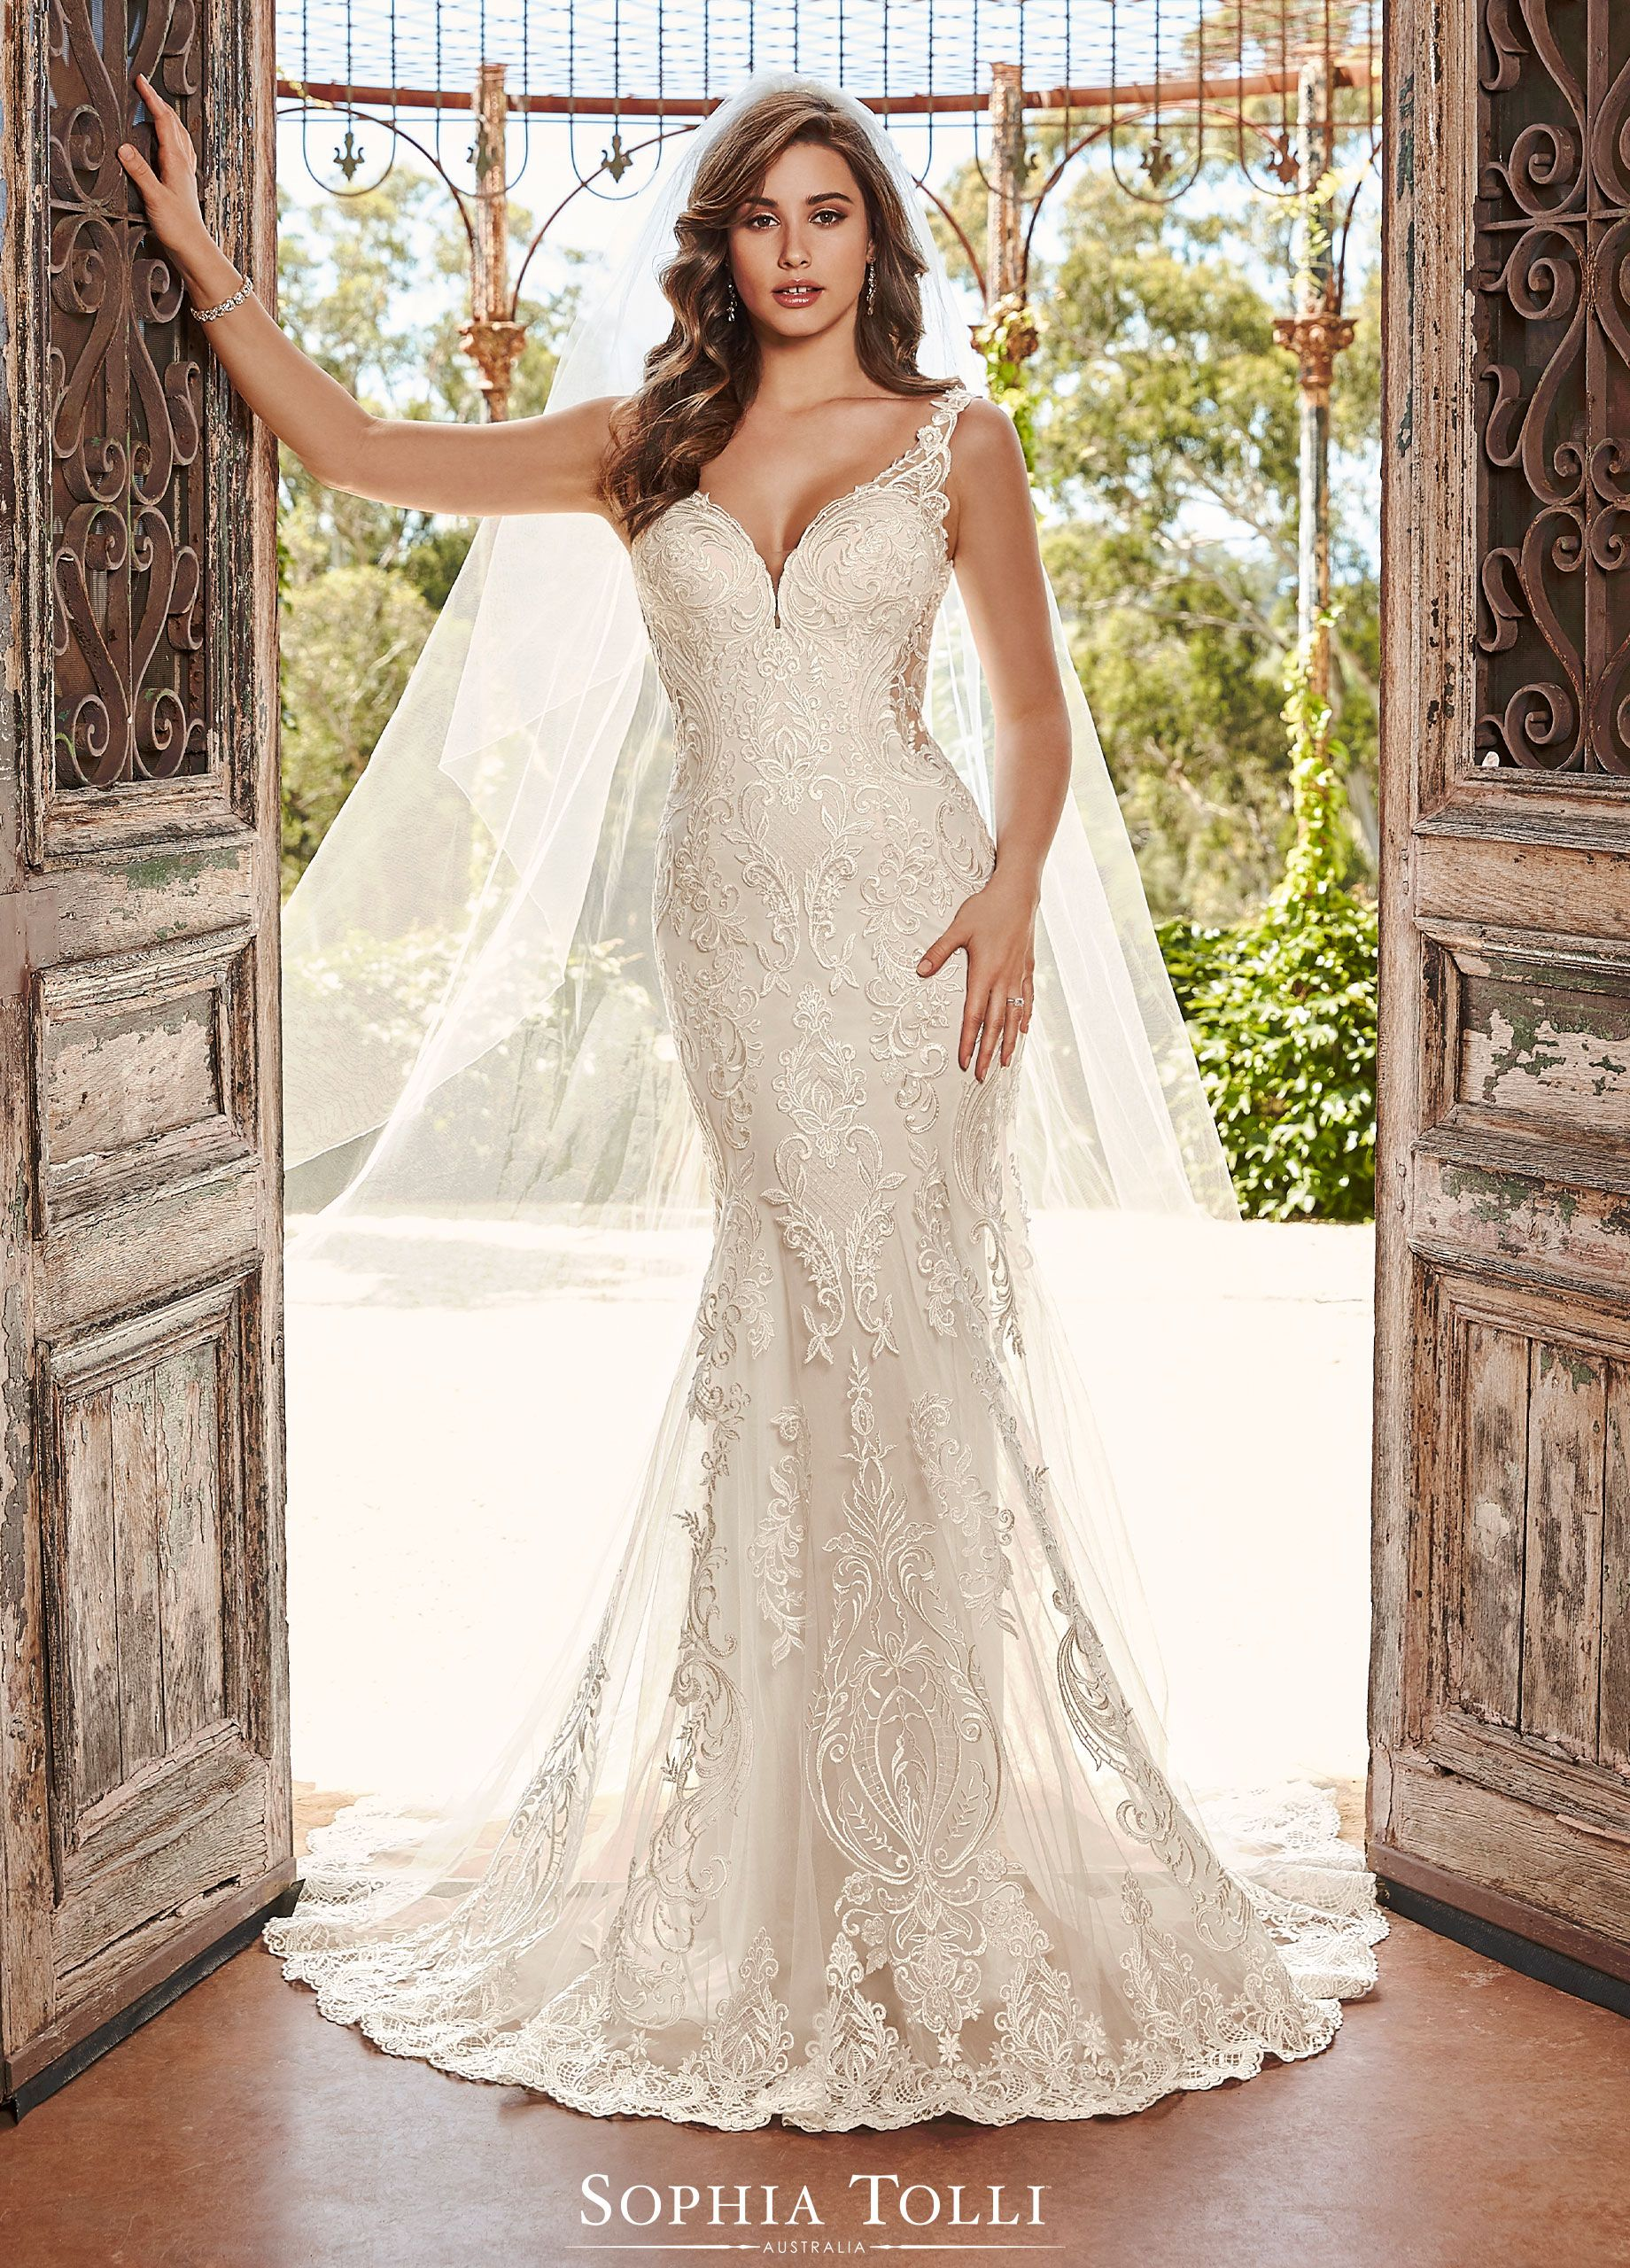 Sophia Tolli Wedding Gowns Y21988 Tara In 2020 Wedding Dresses